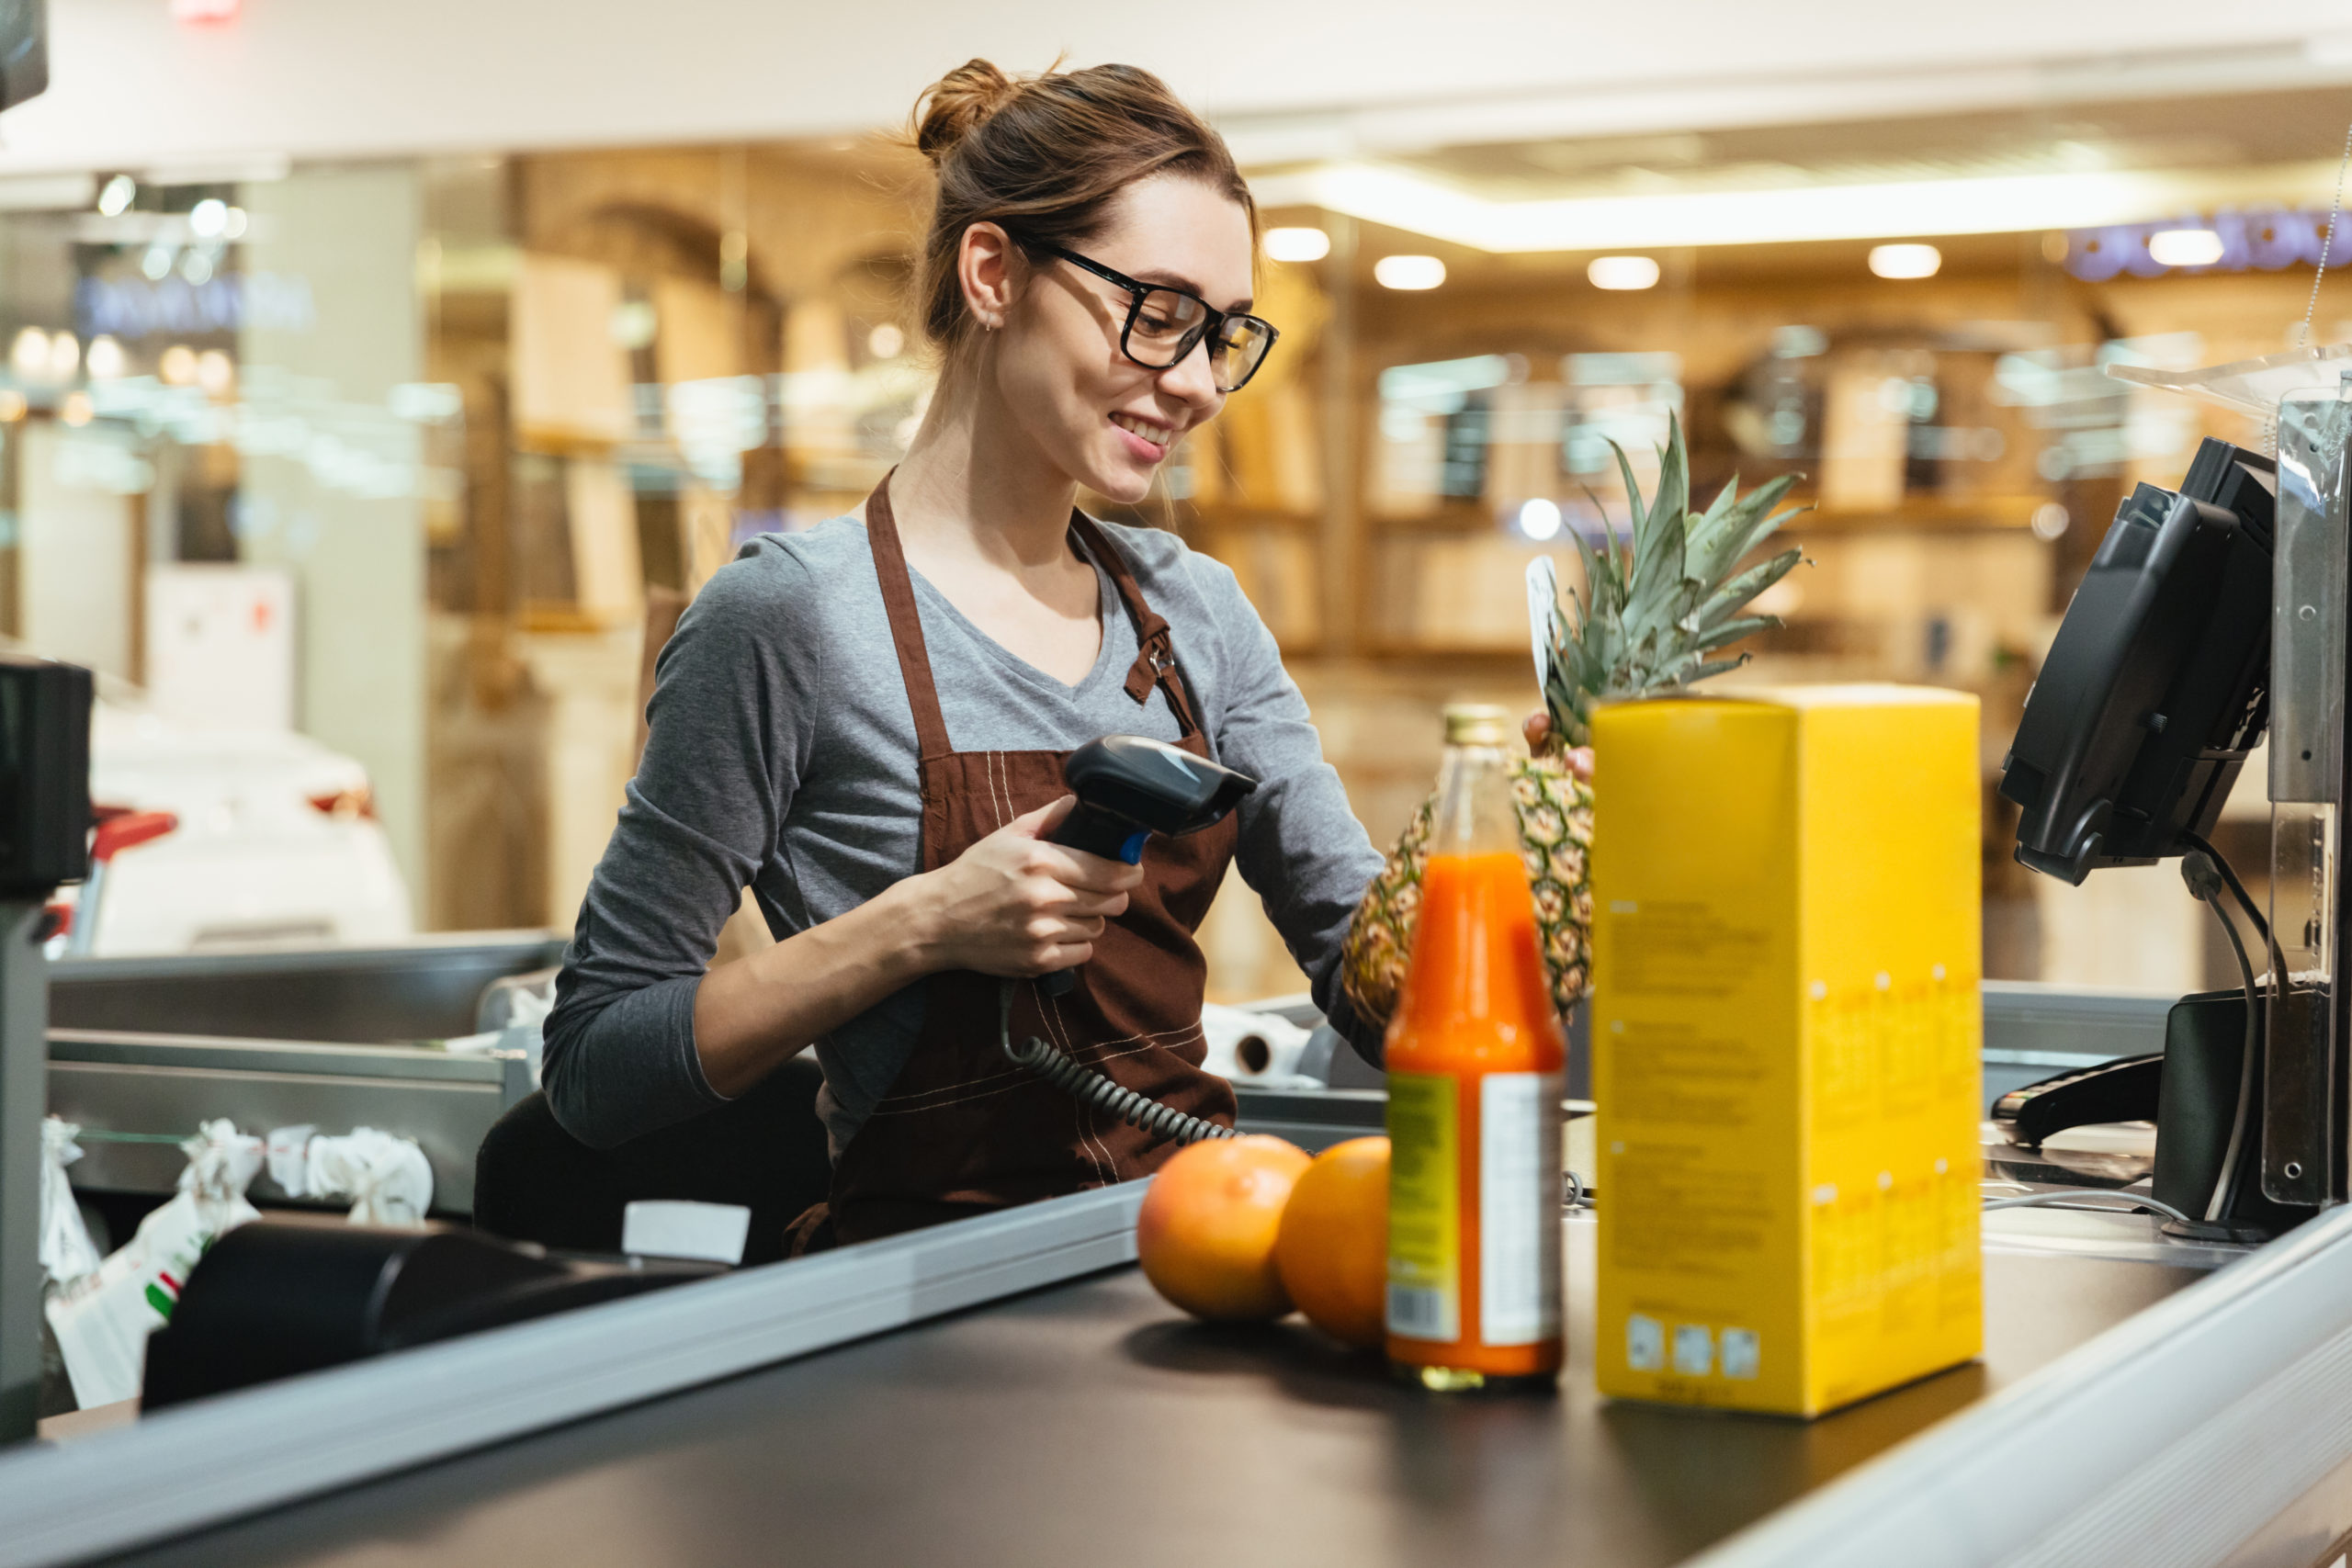 Cashier Scanning Grocery Items